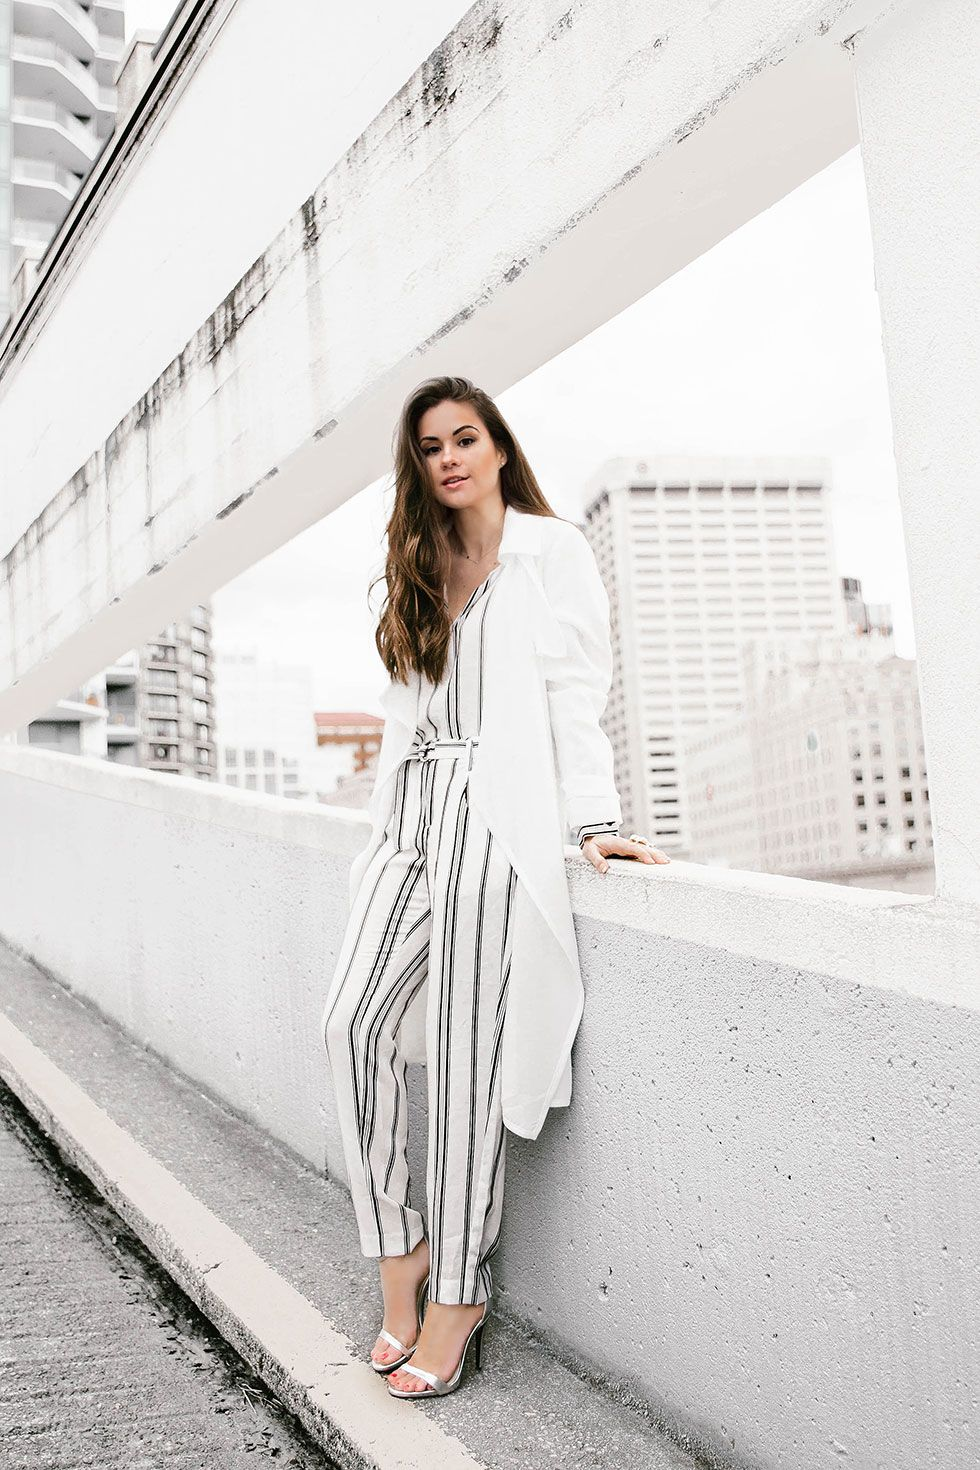 Here Are The Decorating Secrets Top Designers Swear By с изображениями: Tricks And Tips On How To Wear Stripes Or Striped Clothing That Fit Your Figure (с изображениями